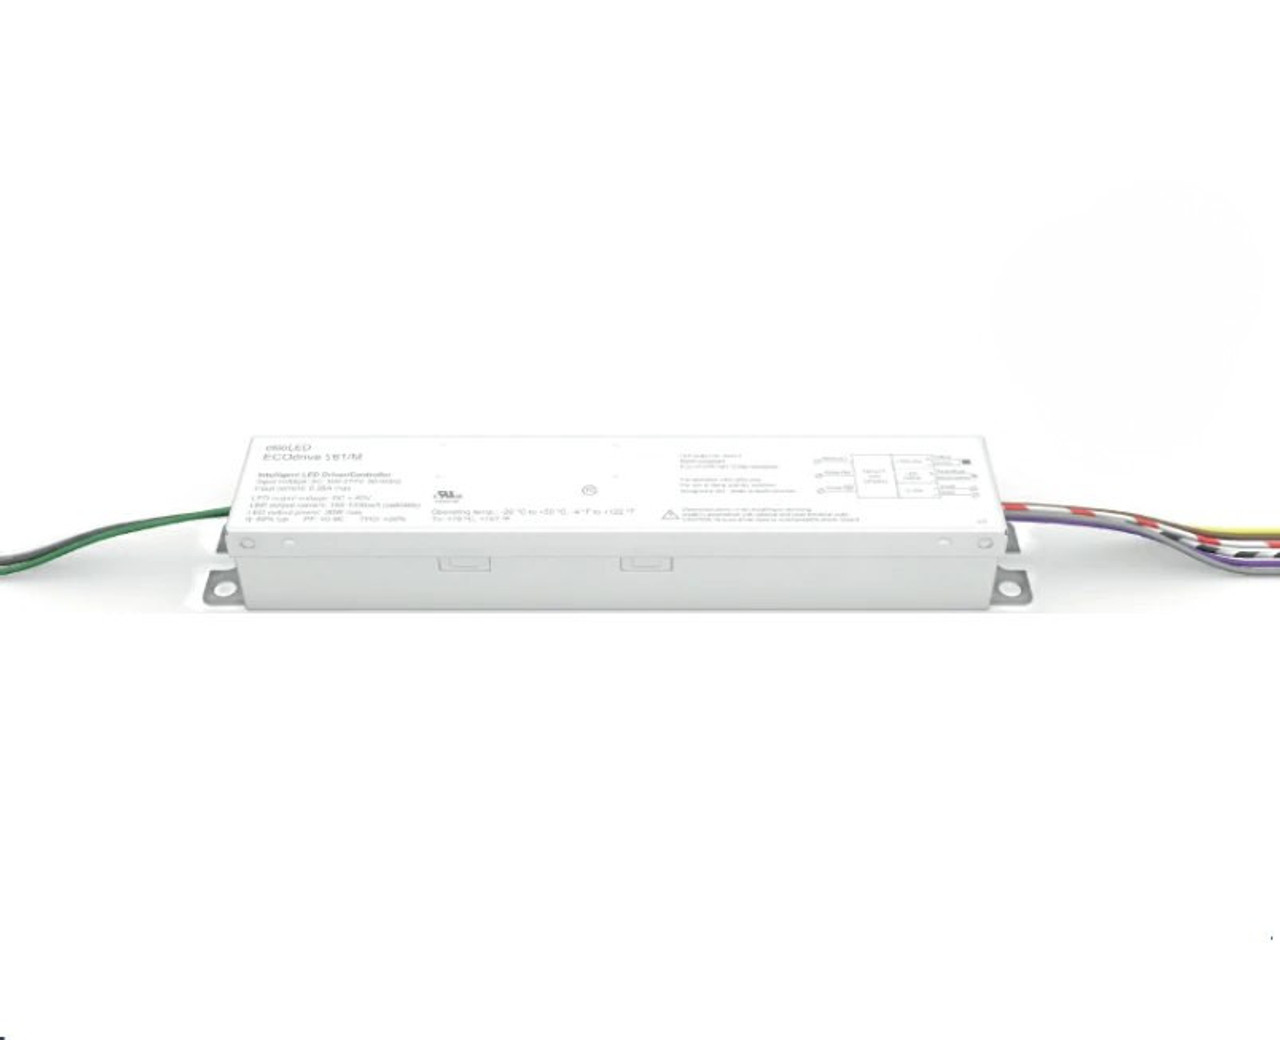 eldoLED ECOdrive 566//M LED Drive Removed From A New Fixture